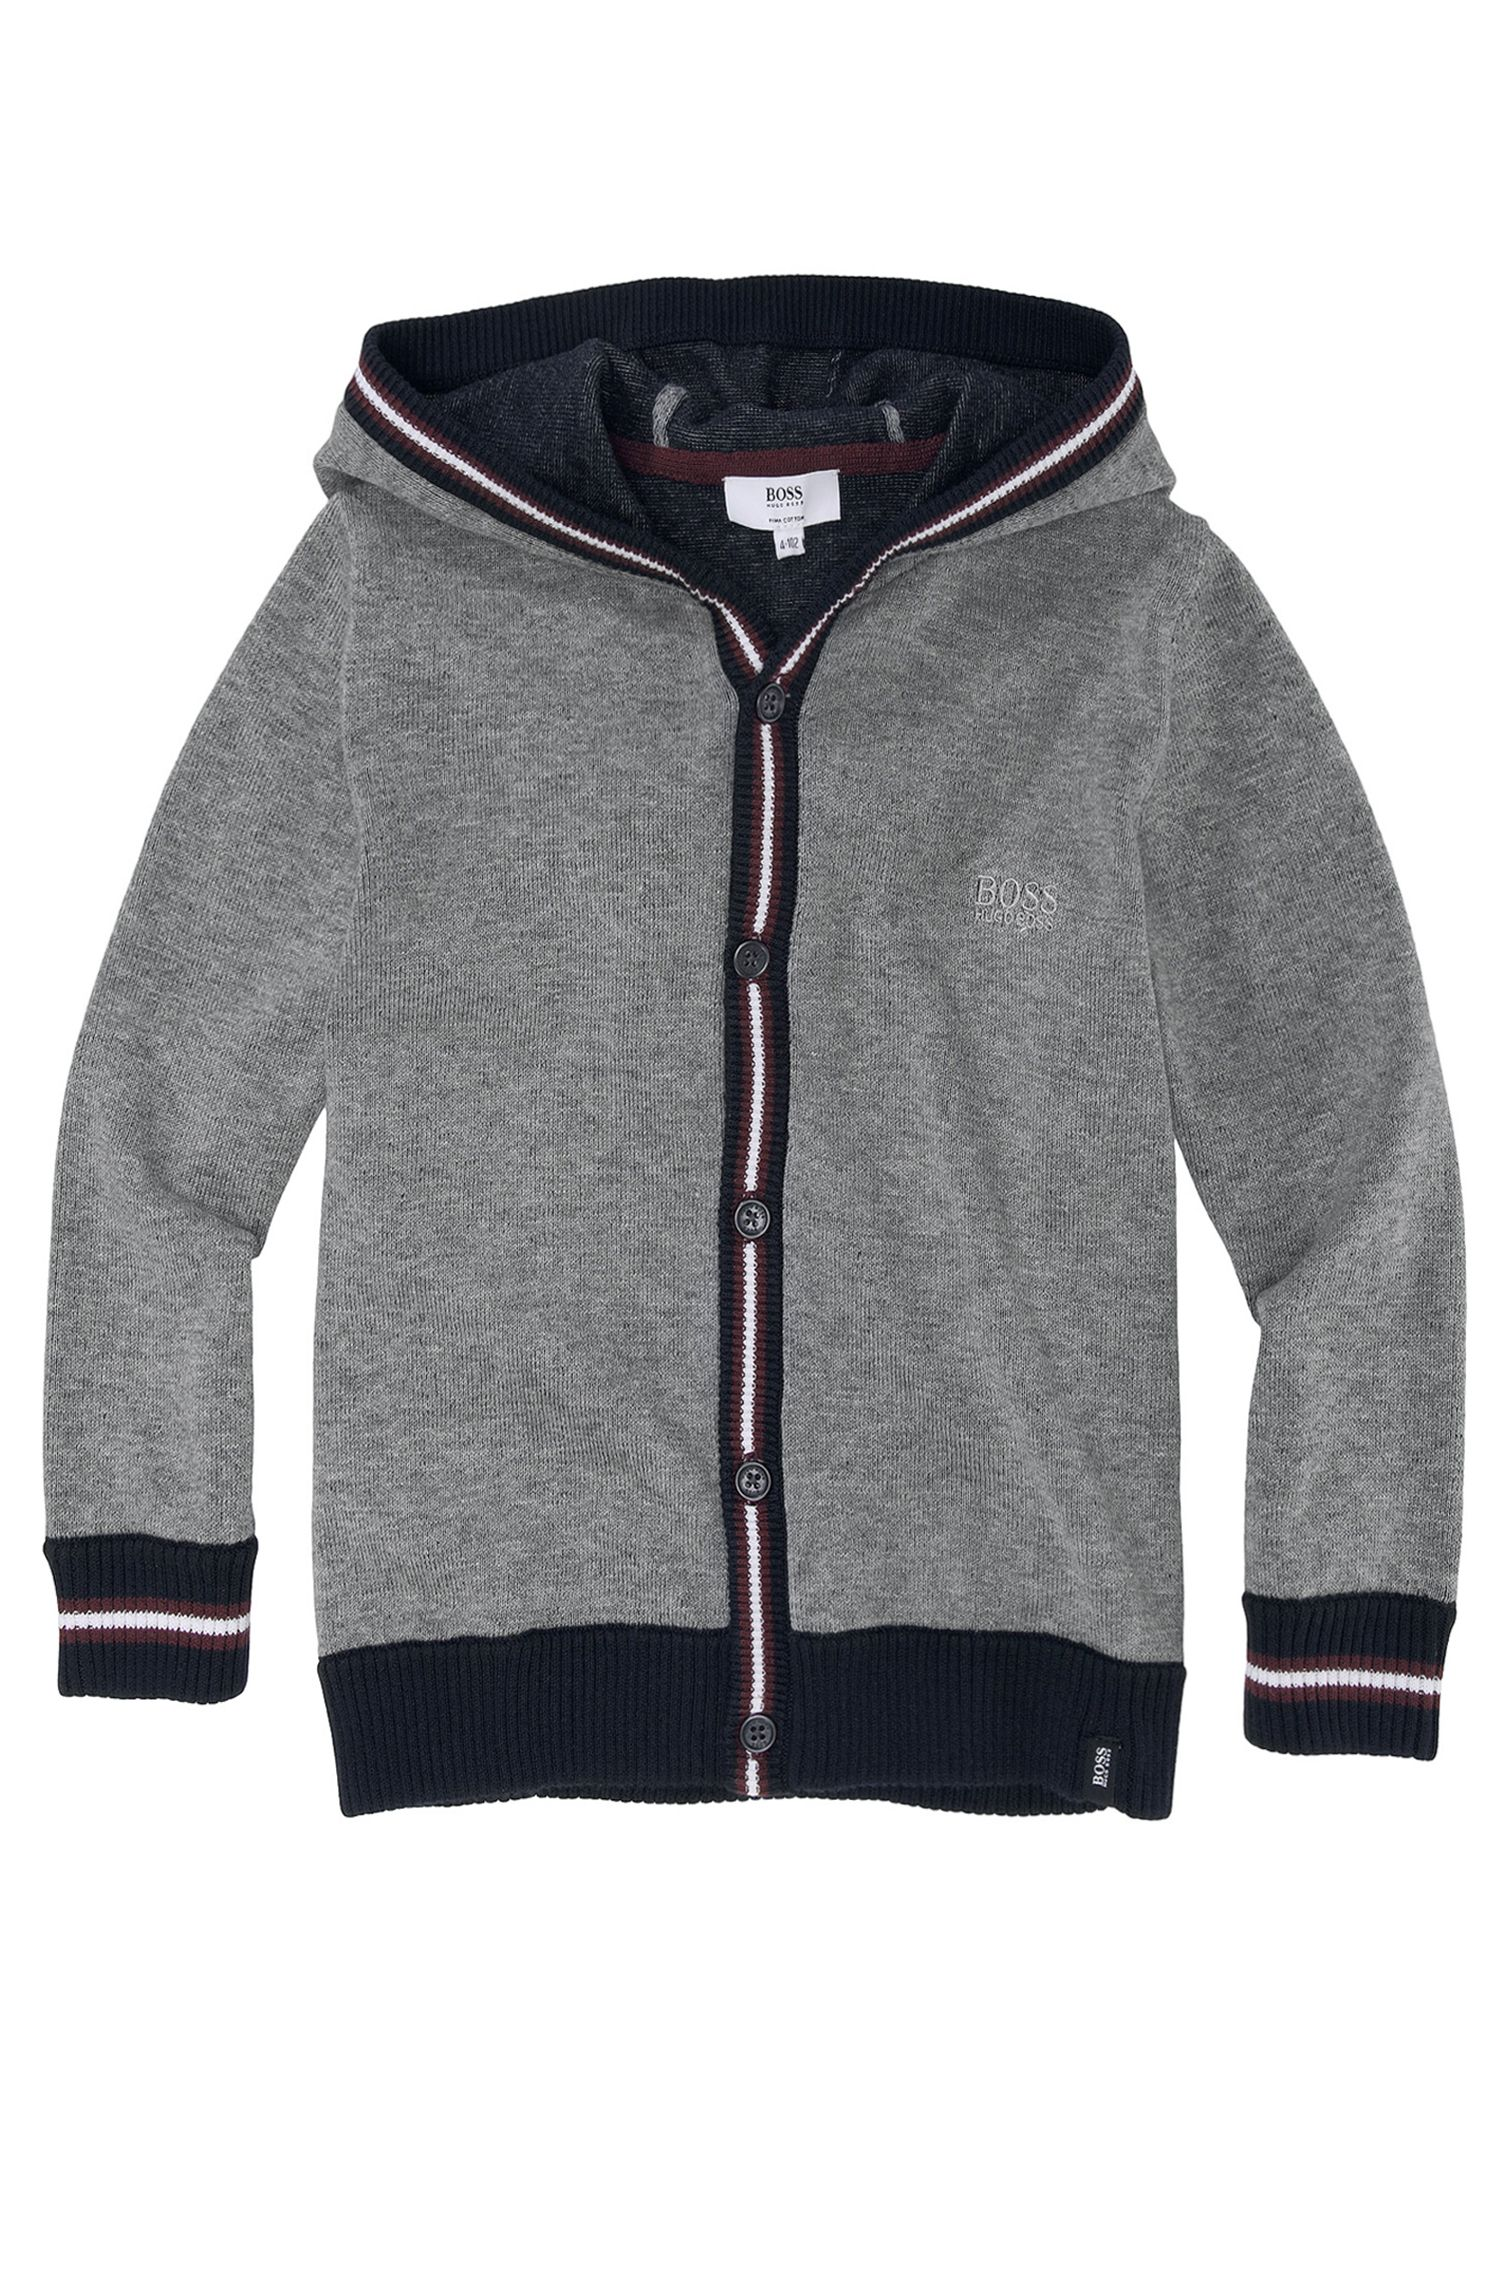 'J25658' | Boys Pima Cotton Hooded Cardigan